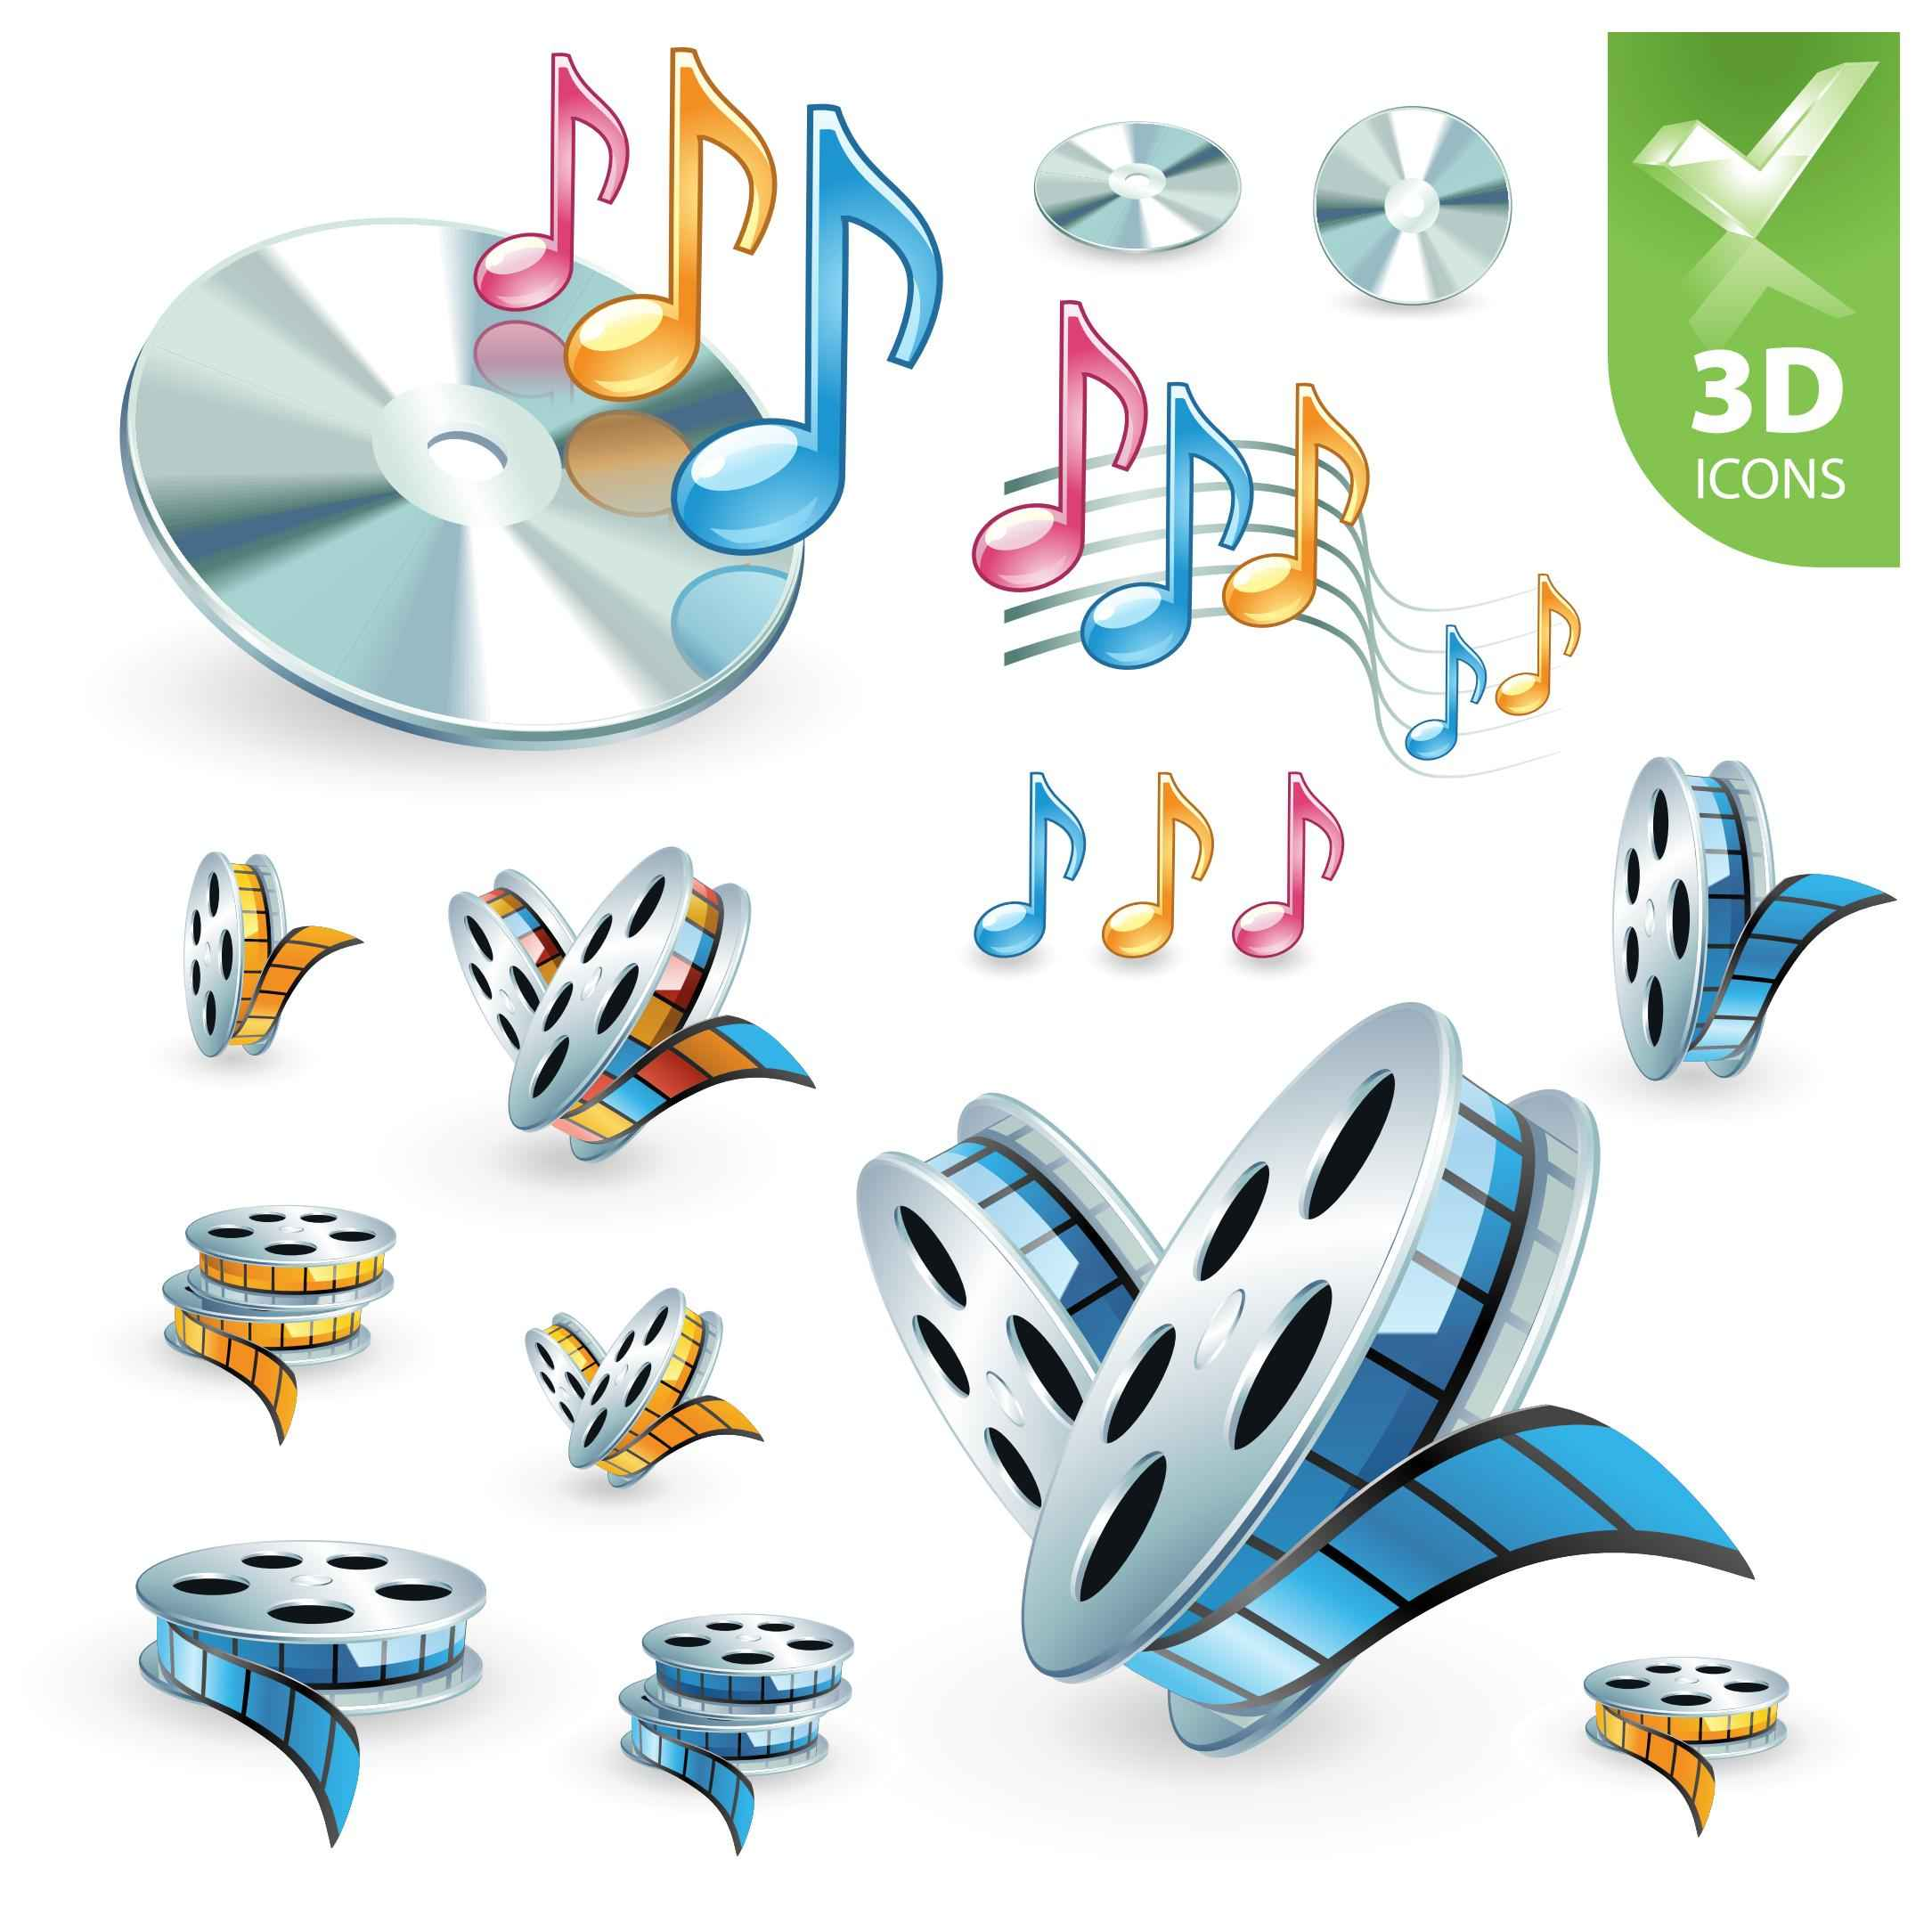 3D audio video icon 01 vector